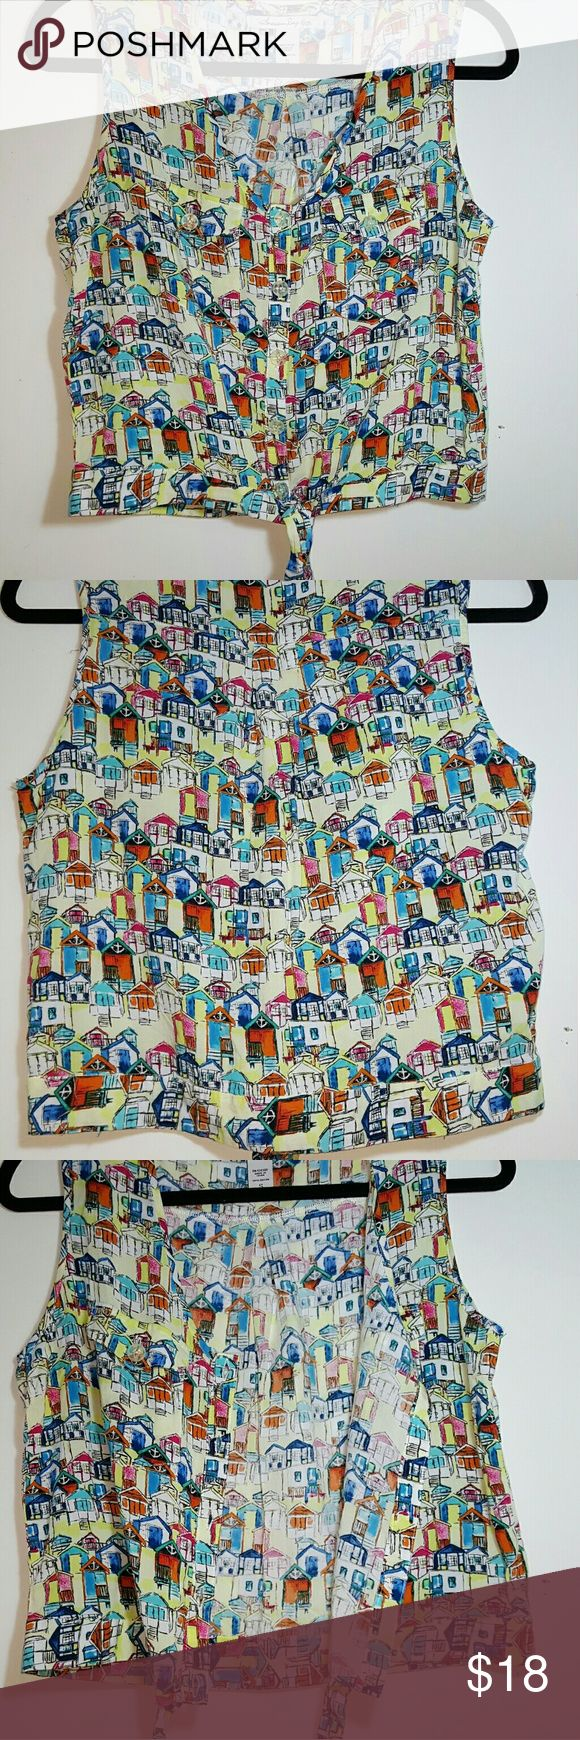 Super Colorful Fun Sexy Small/Medium Crop Top Super Colorful Fun Sexy Small/ Medium Crop Top With Waist Tie  It is button up and has two front pockets. It has a colorful pattern of little village houses throughout! With little anchors.  Style:Crop Top Sleeve Style: Sleeveless  Fresh and Super Soft  MADE FROM A LIGHT BREATHABLE MATERIAL  Size:  SMALL MEDIUM Chest:  17 INCHES---- 34 ALL AROUND  This is a perfect piece to pair with High waisted Jeans/shorts or a Nice pencil skirt.   PERFECT…